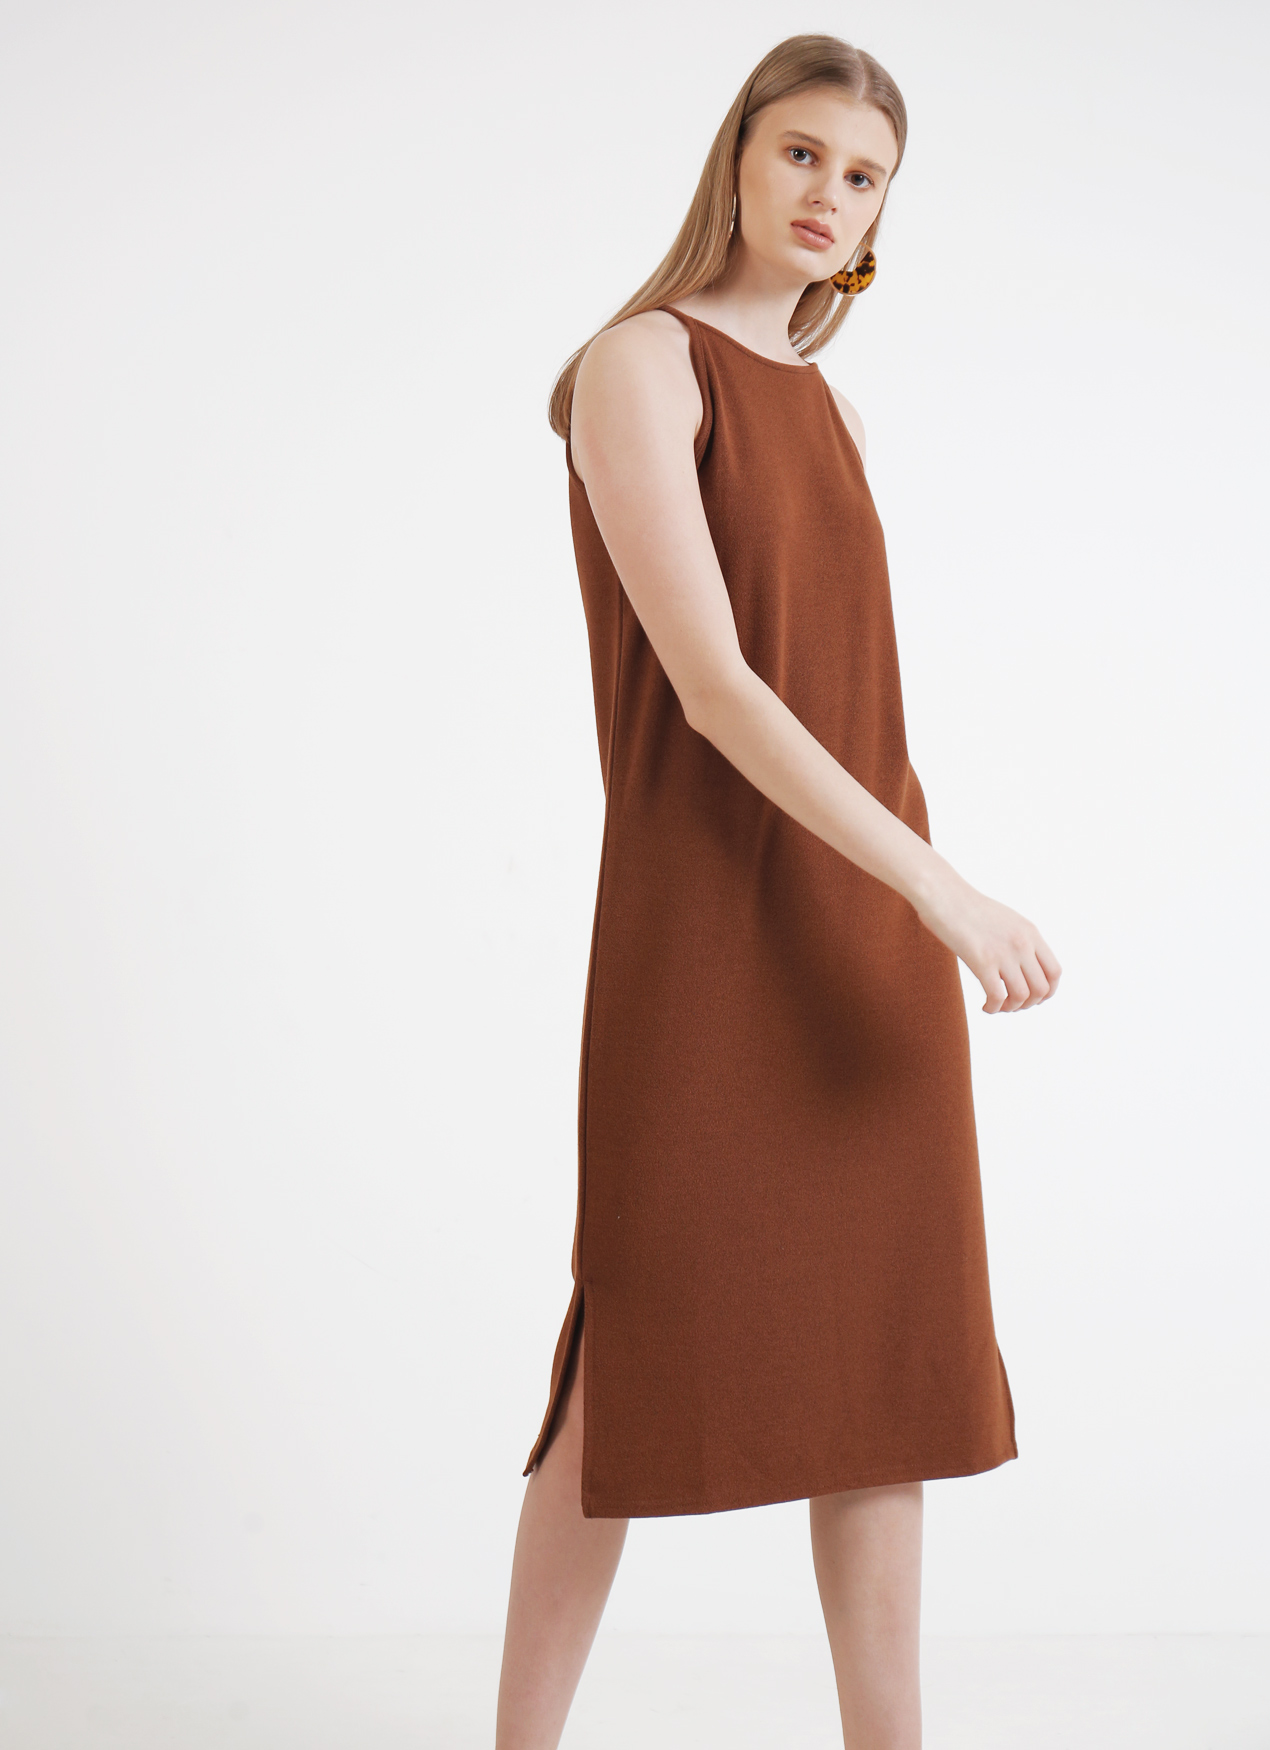 BOWN Courtney Dress - Brown